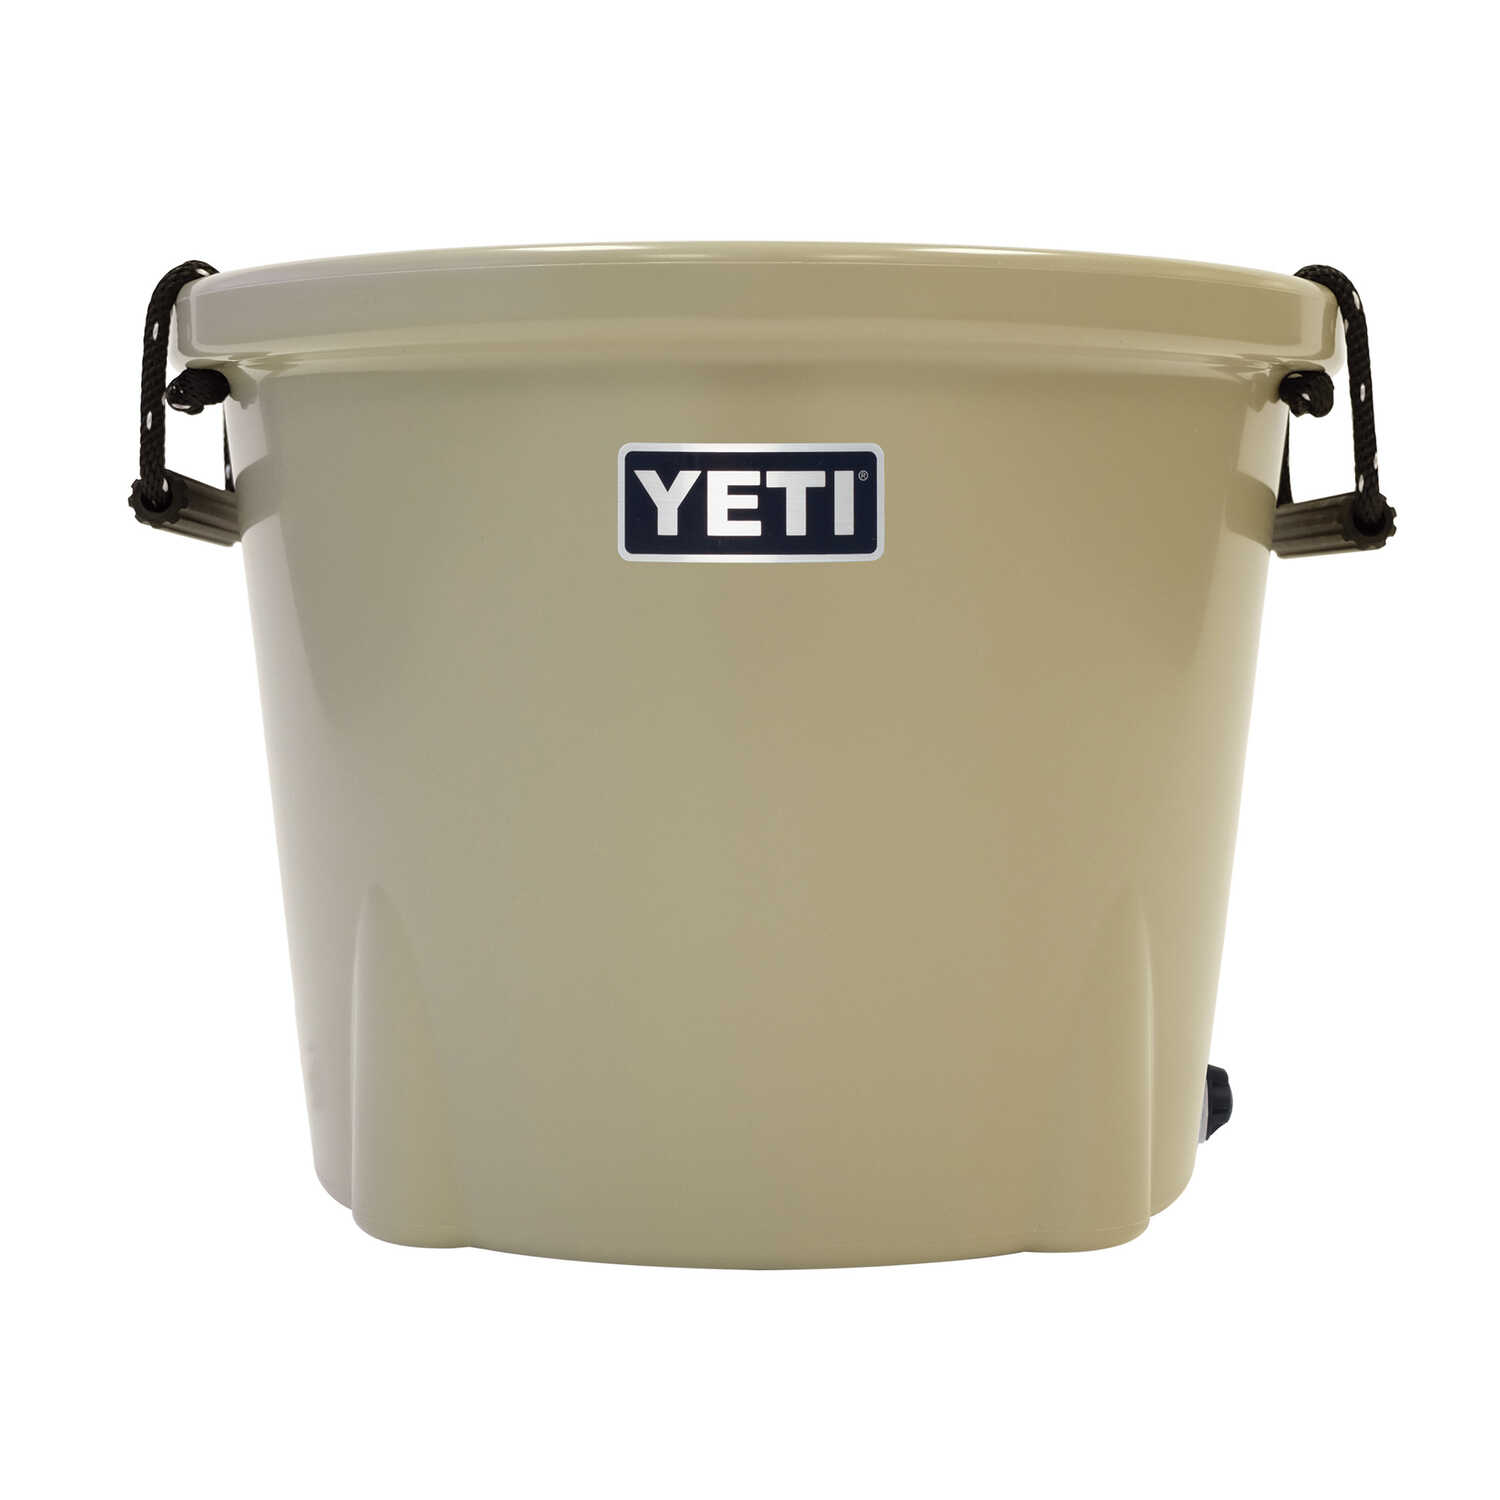 YETI  Tank 45  Beverage Tub  52 can capacity Tan